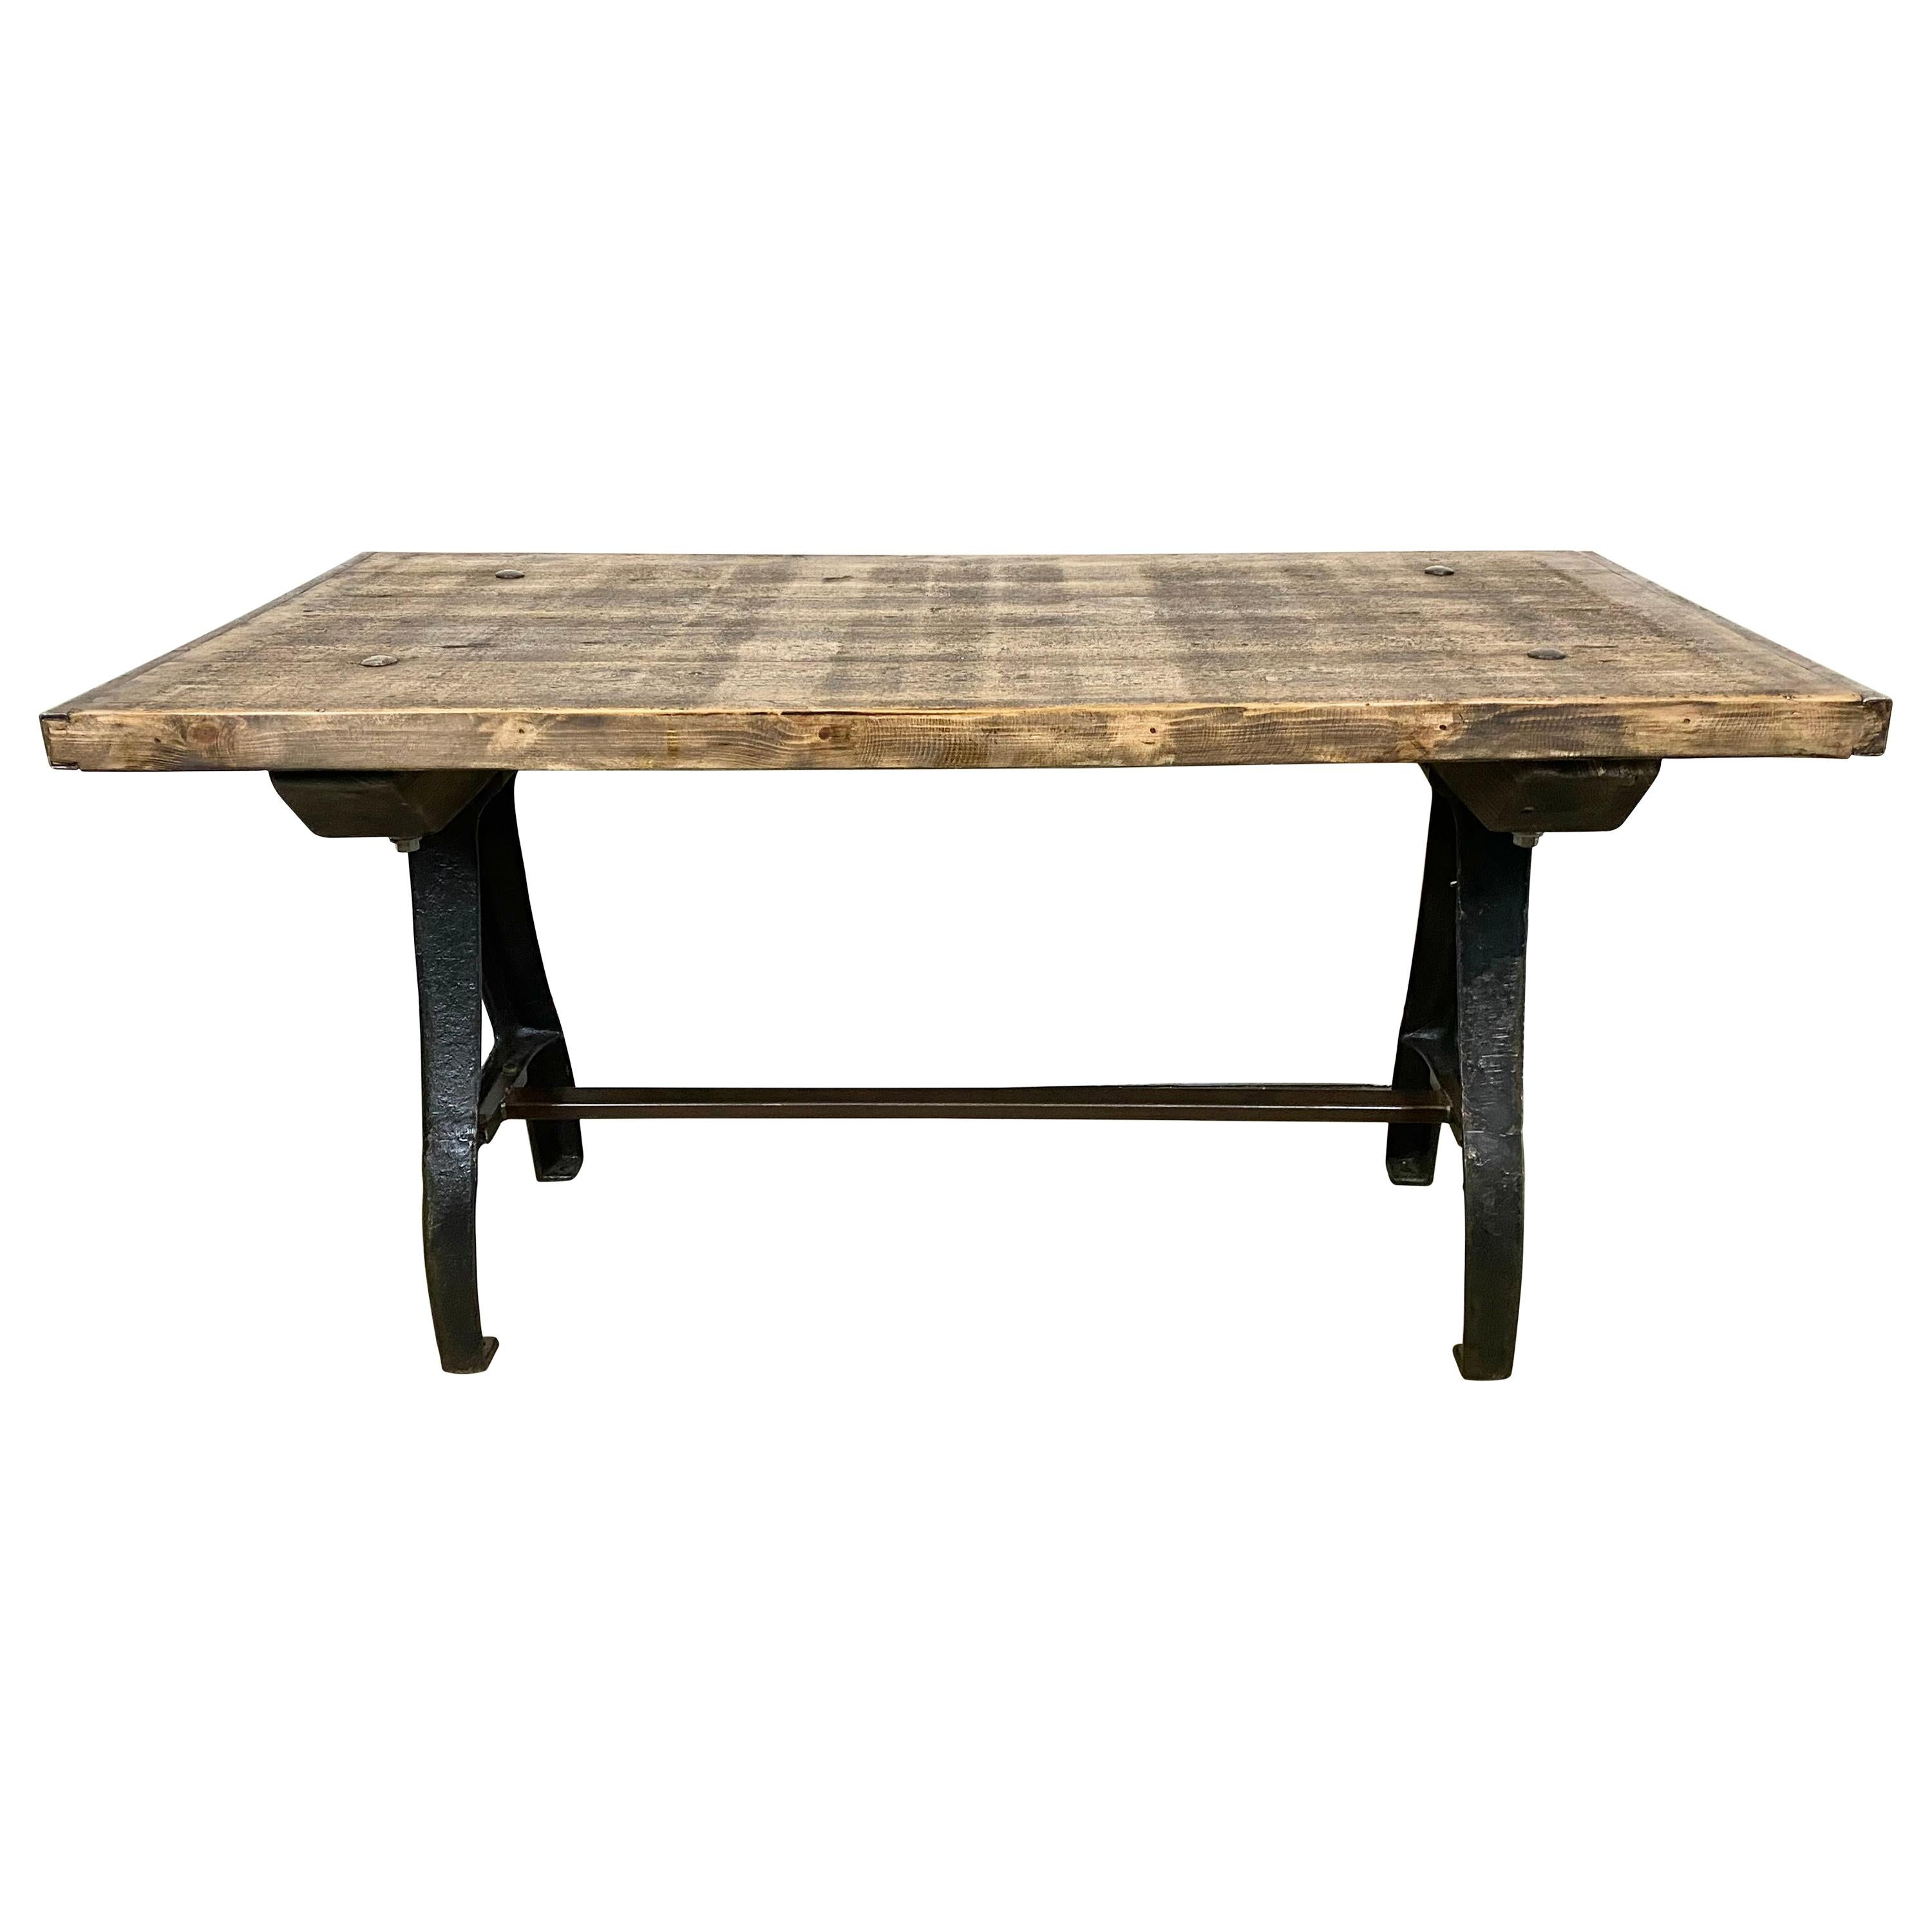 Vintage Industrial Dining Table with Cast Iron Legs